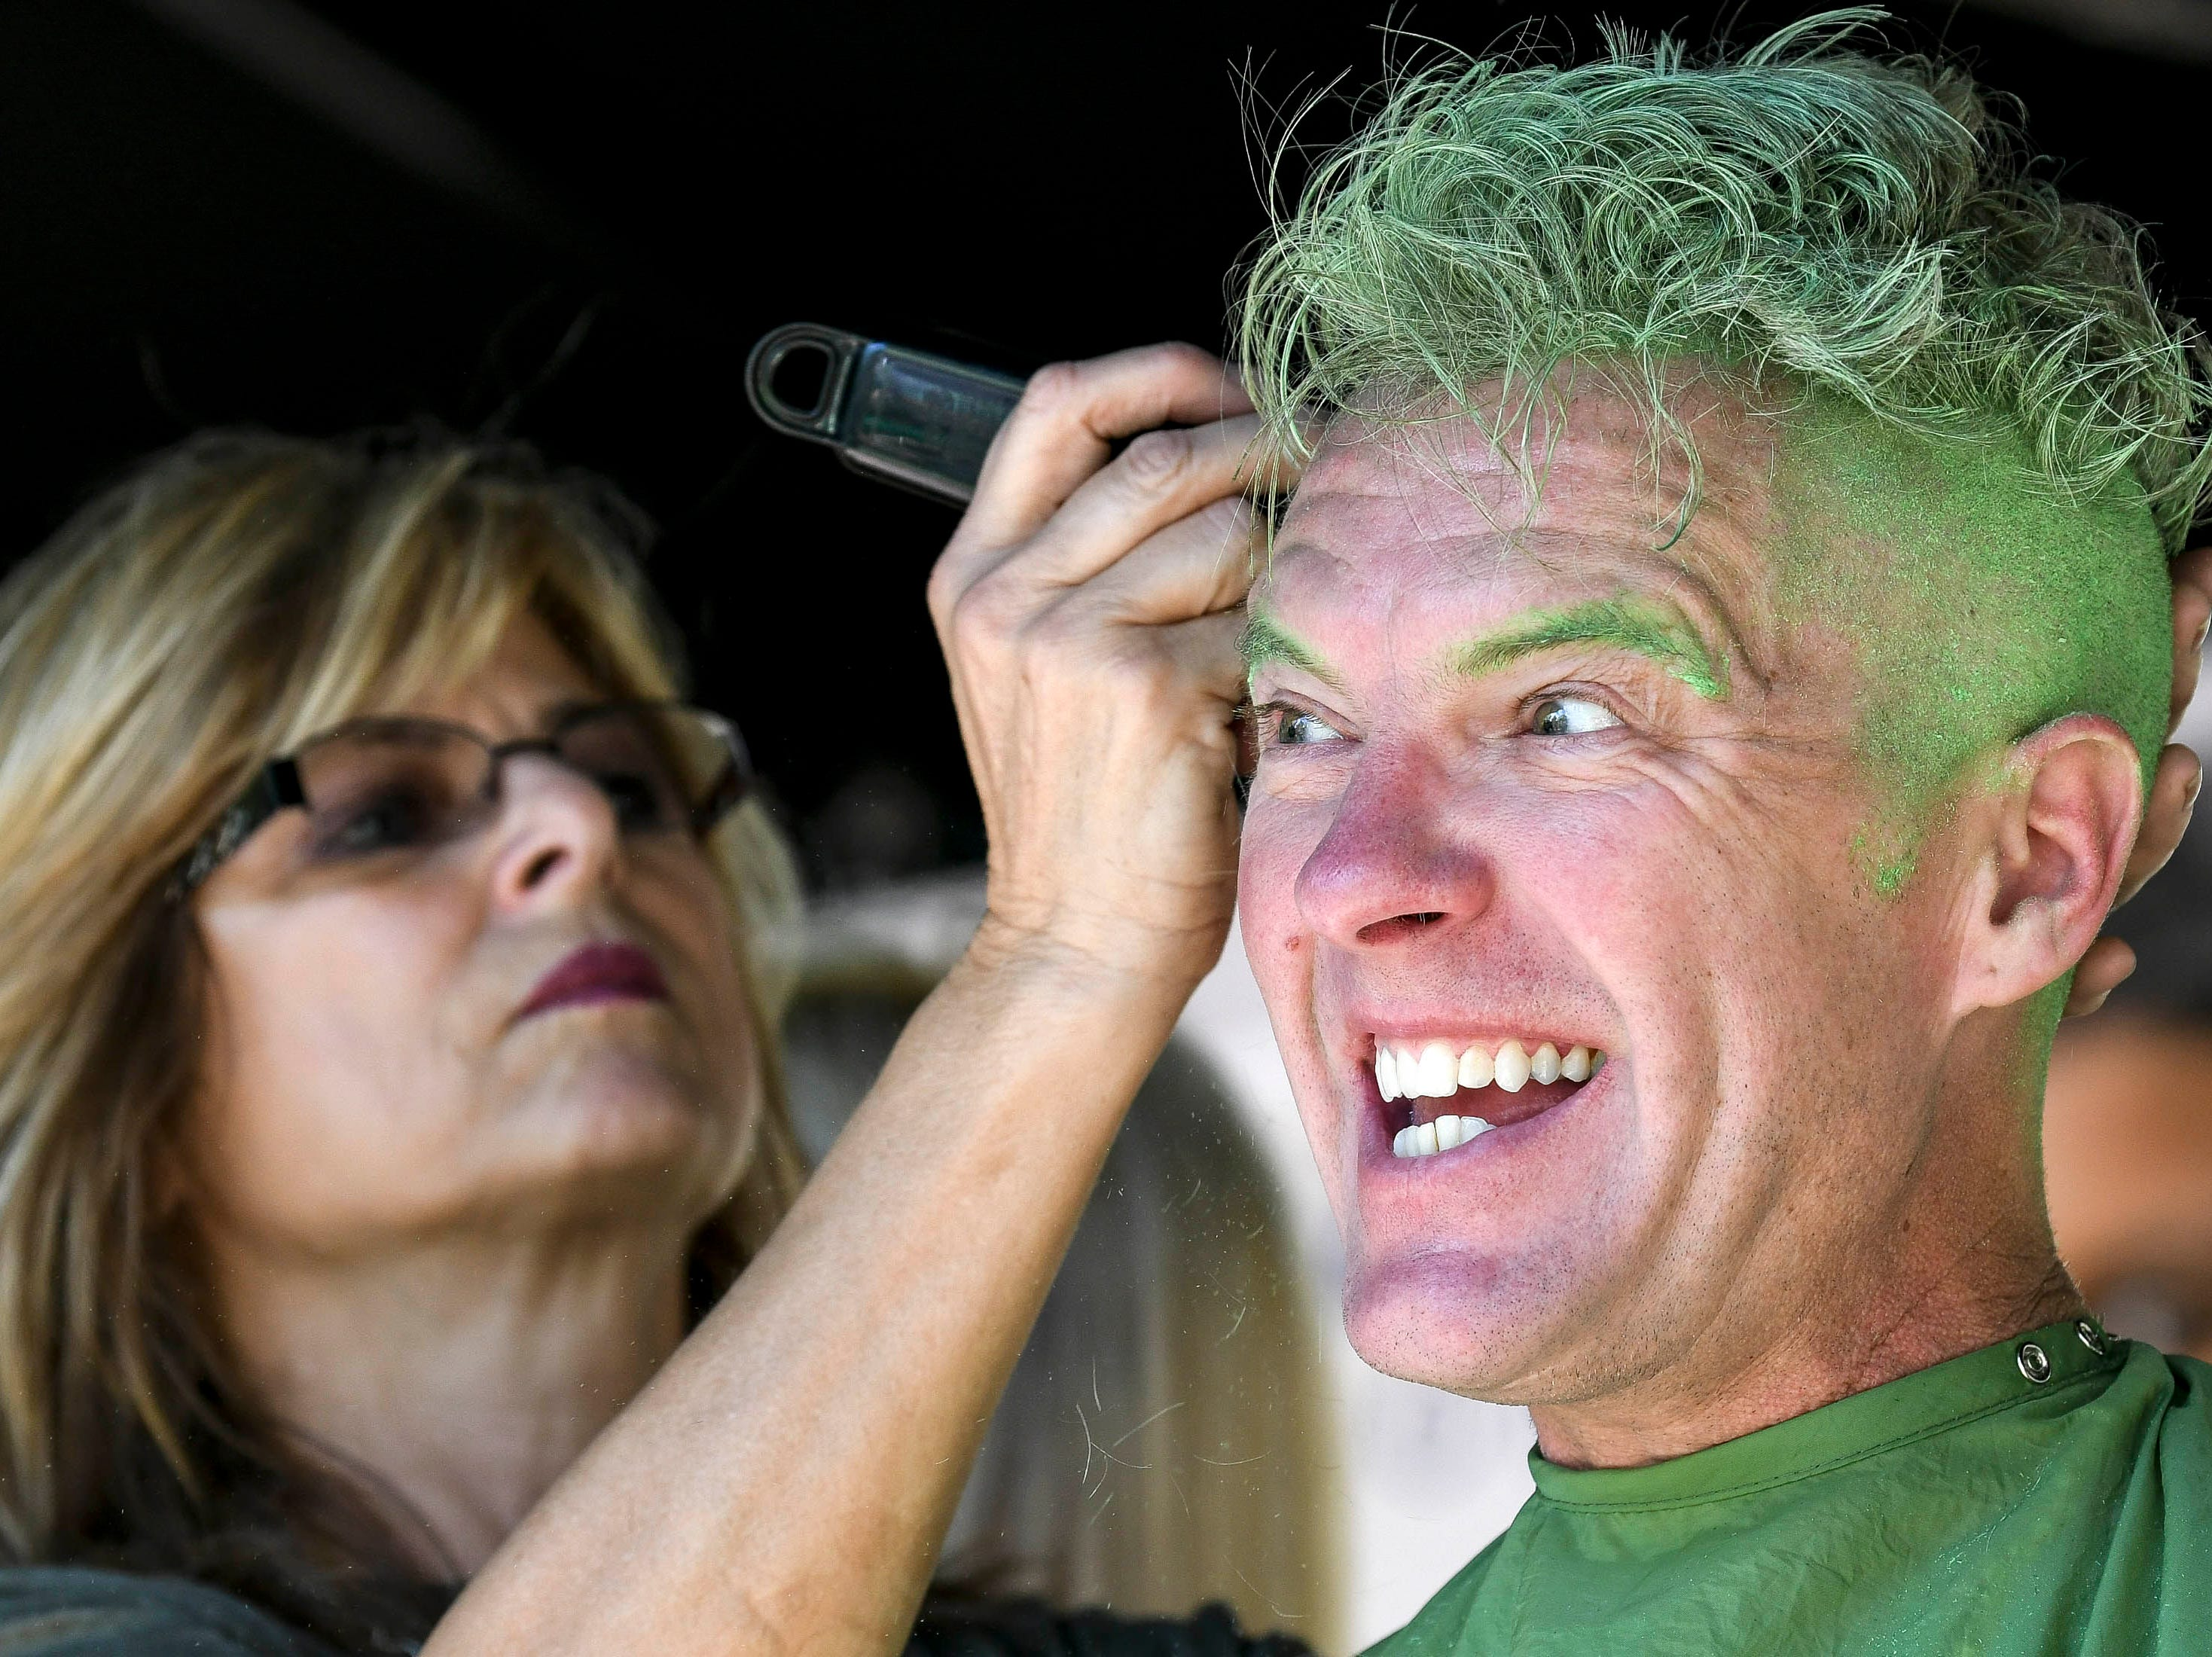 Scott Schmidt reacts to having his head shaved by Renee Dippel of Ambiance Salon and Spa during the St. Baldricks Foundation fundraiser at the Avenue Viera.